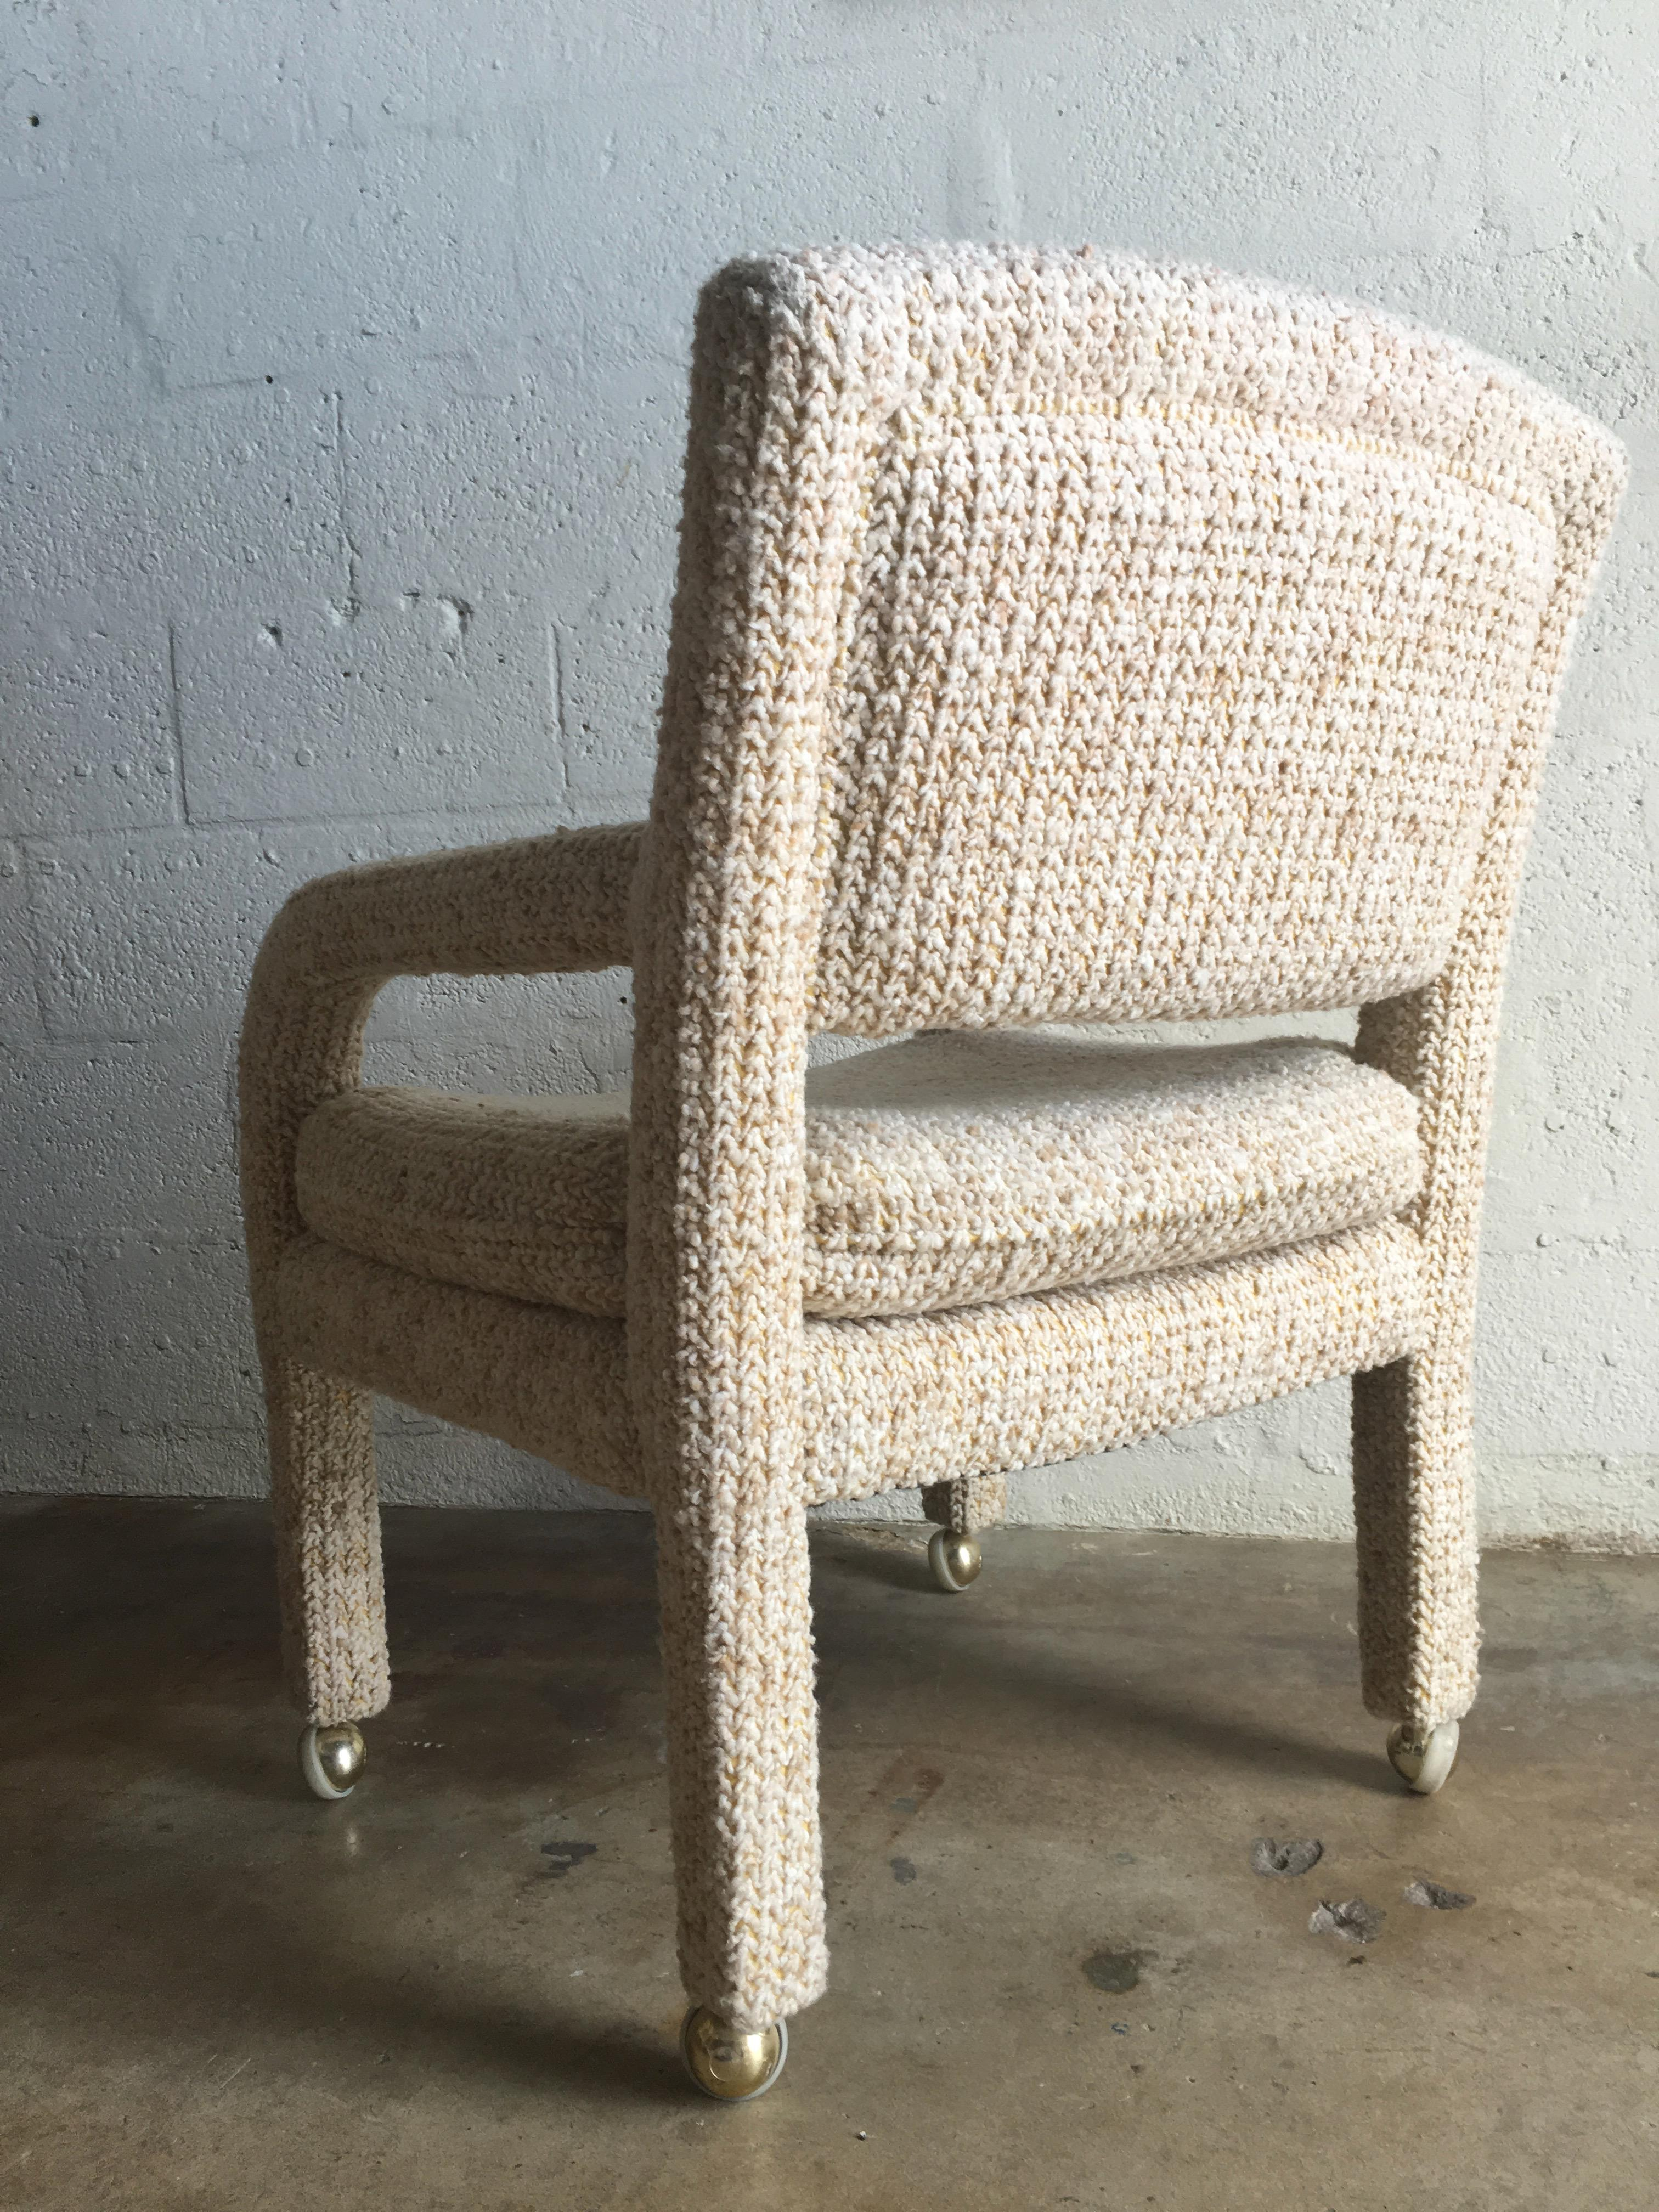 Vintage Mid Century Modern Upholstered Club Chairs By Lane In The Milo  Baughman Style   A